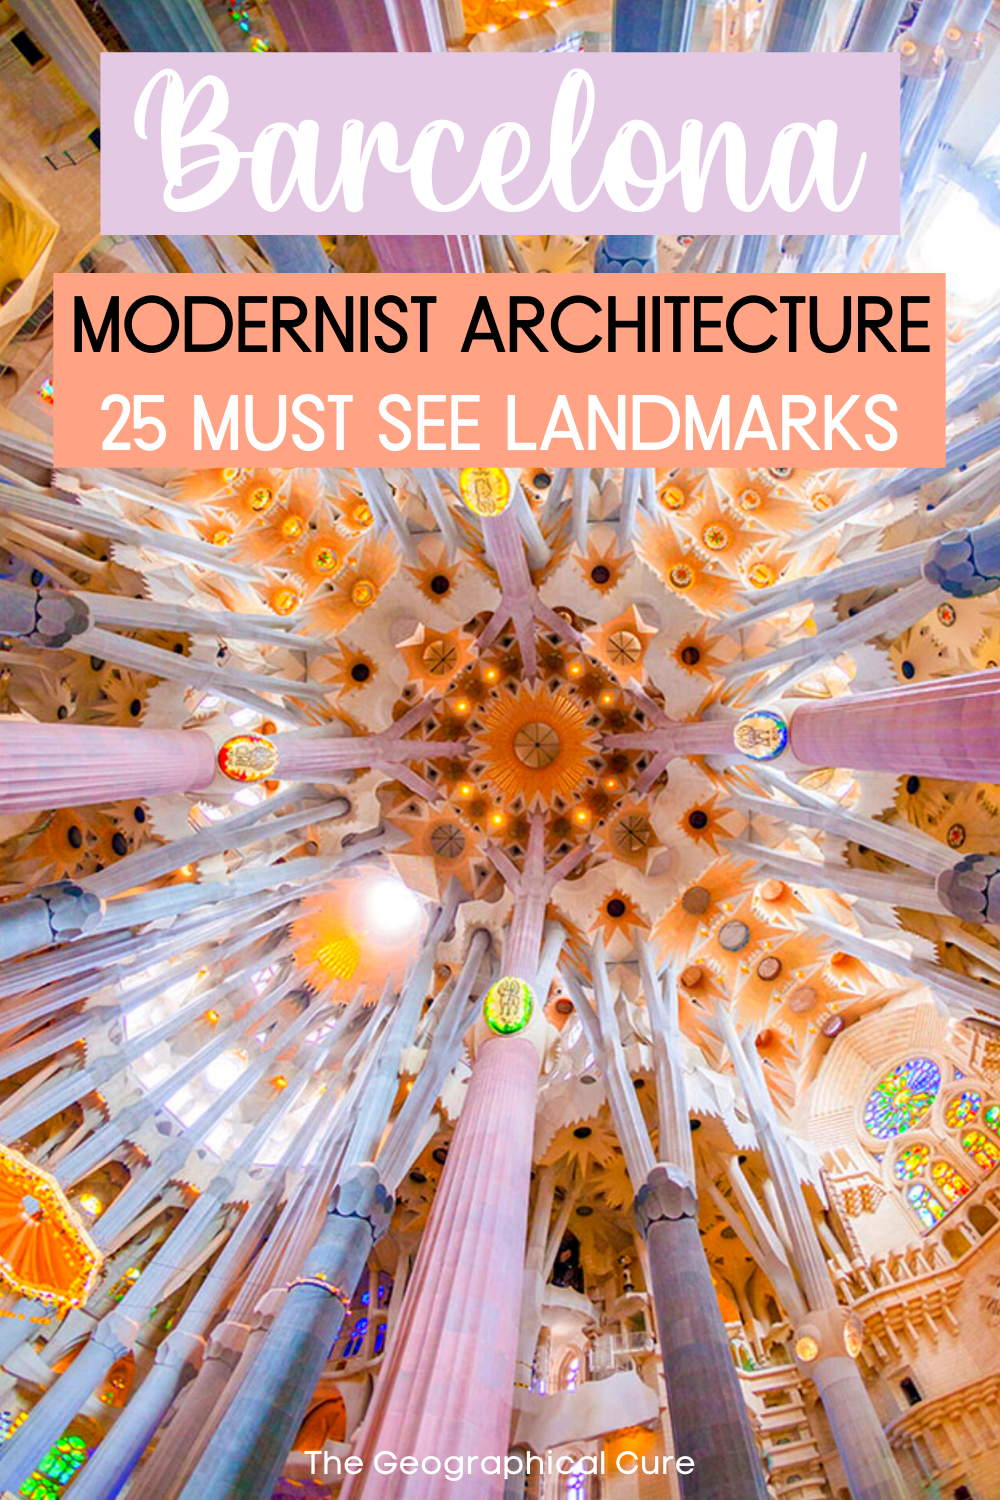 Guide to Modernist Architecture in Barcelona